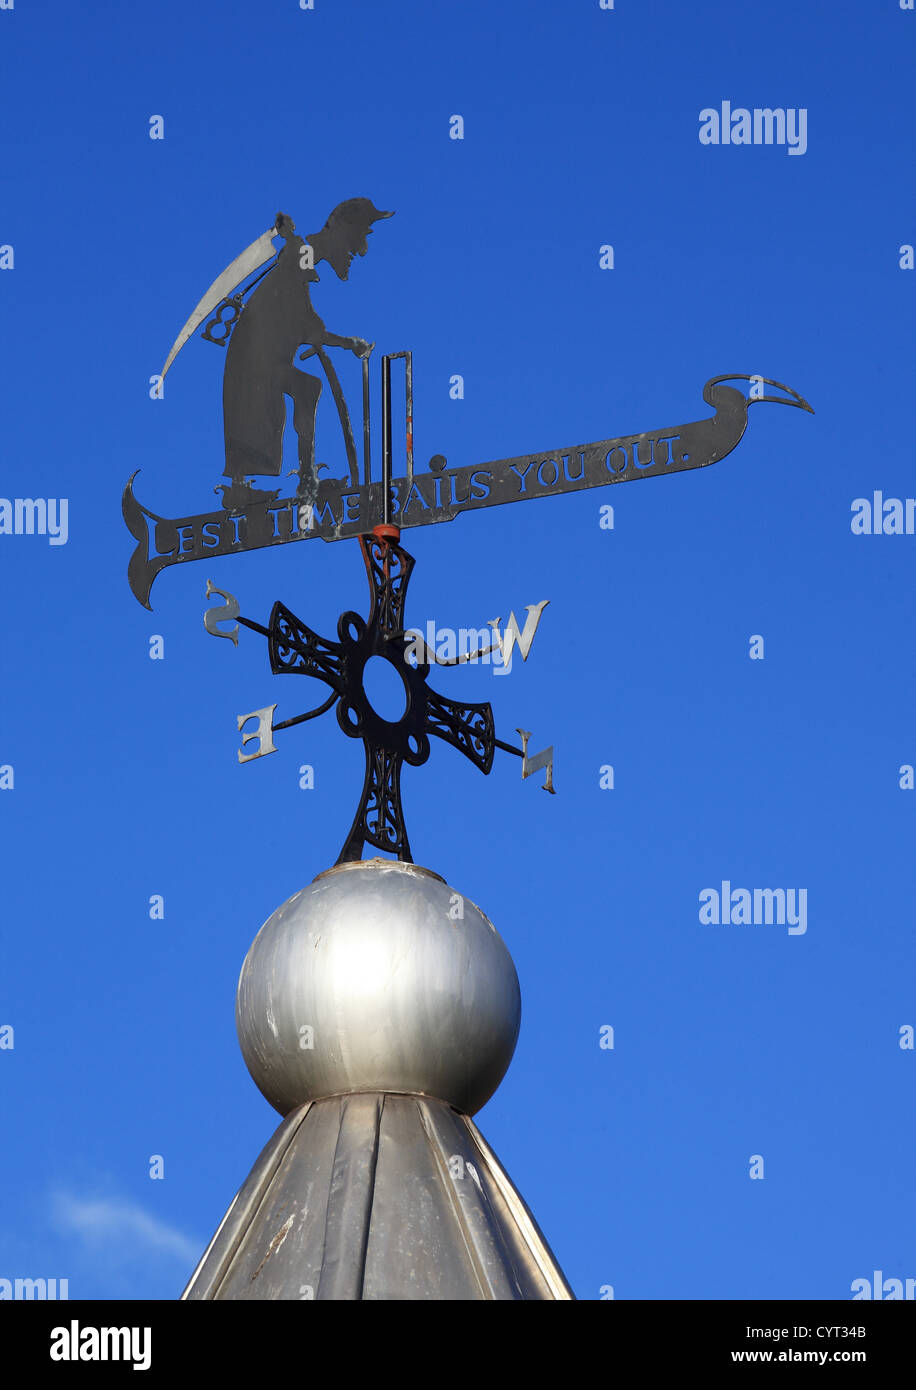 Weather vane above bandstand 'Lest Time Bails You Out'  Durham north east England UK - Stock Image